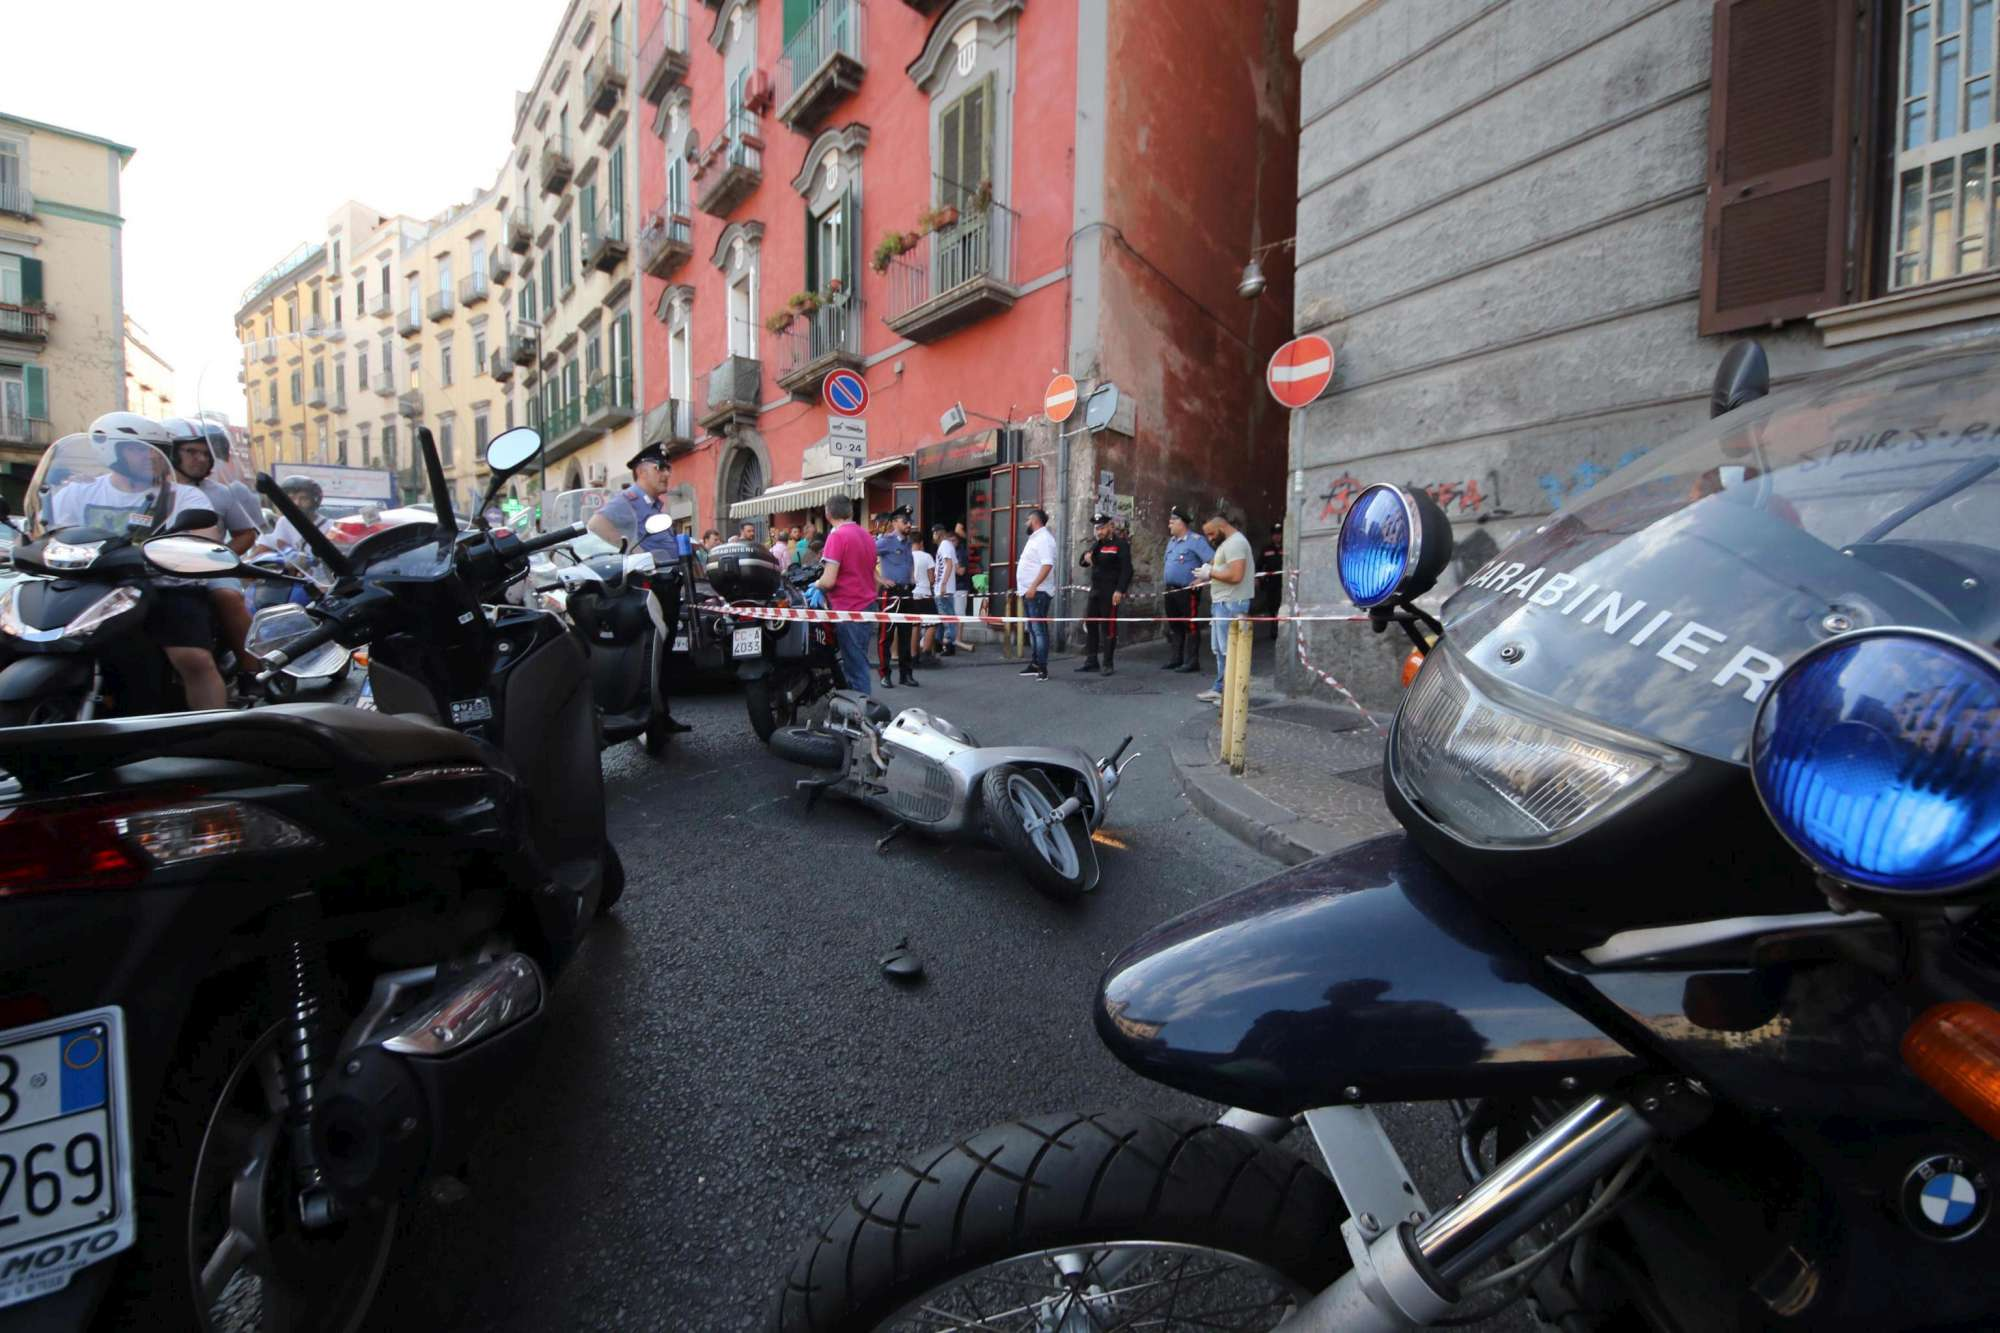 Sparatoria a Napoli, due assassinati in strada